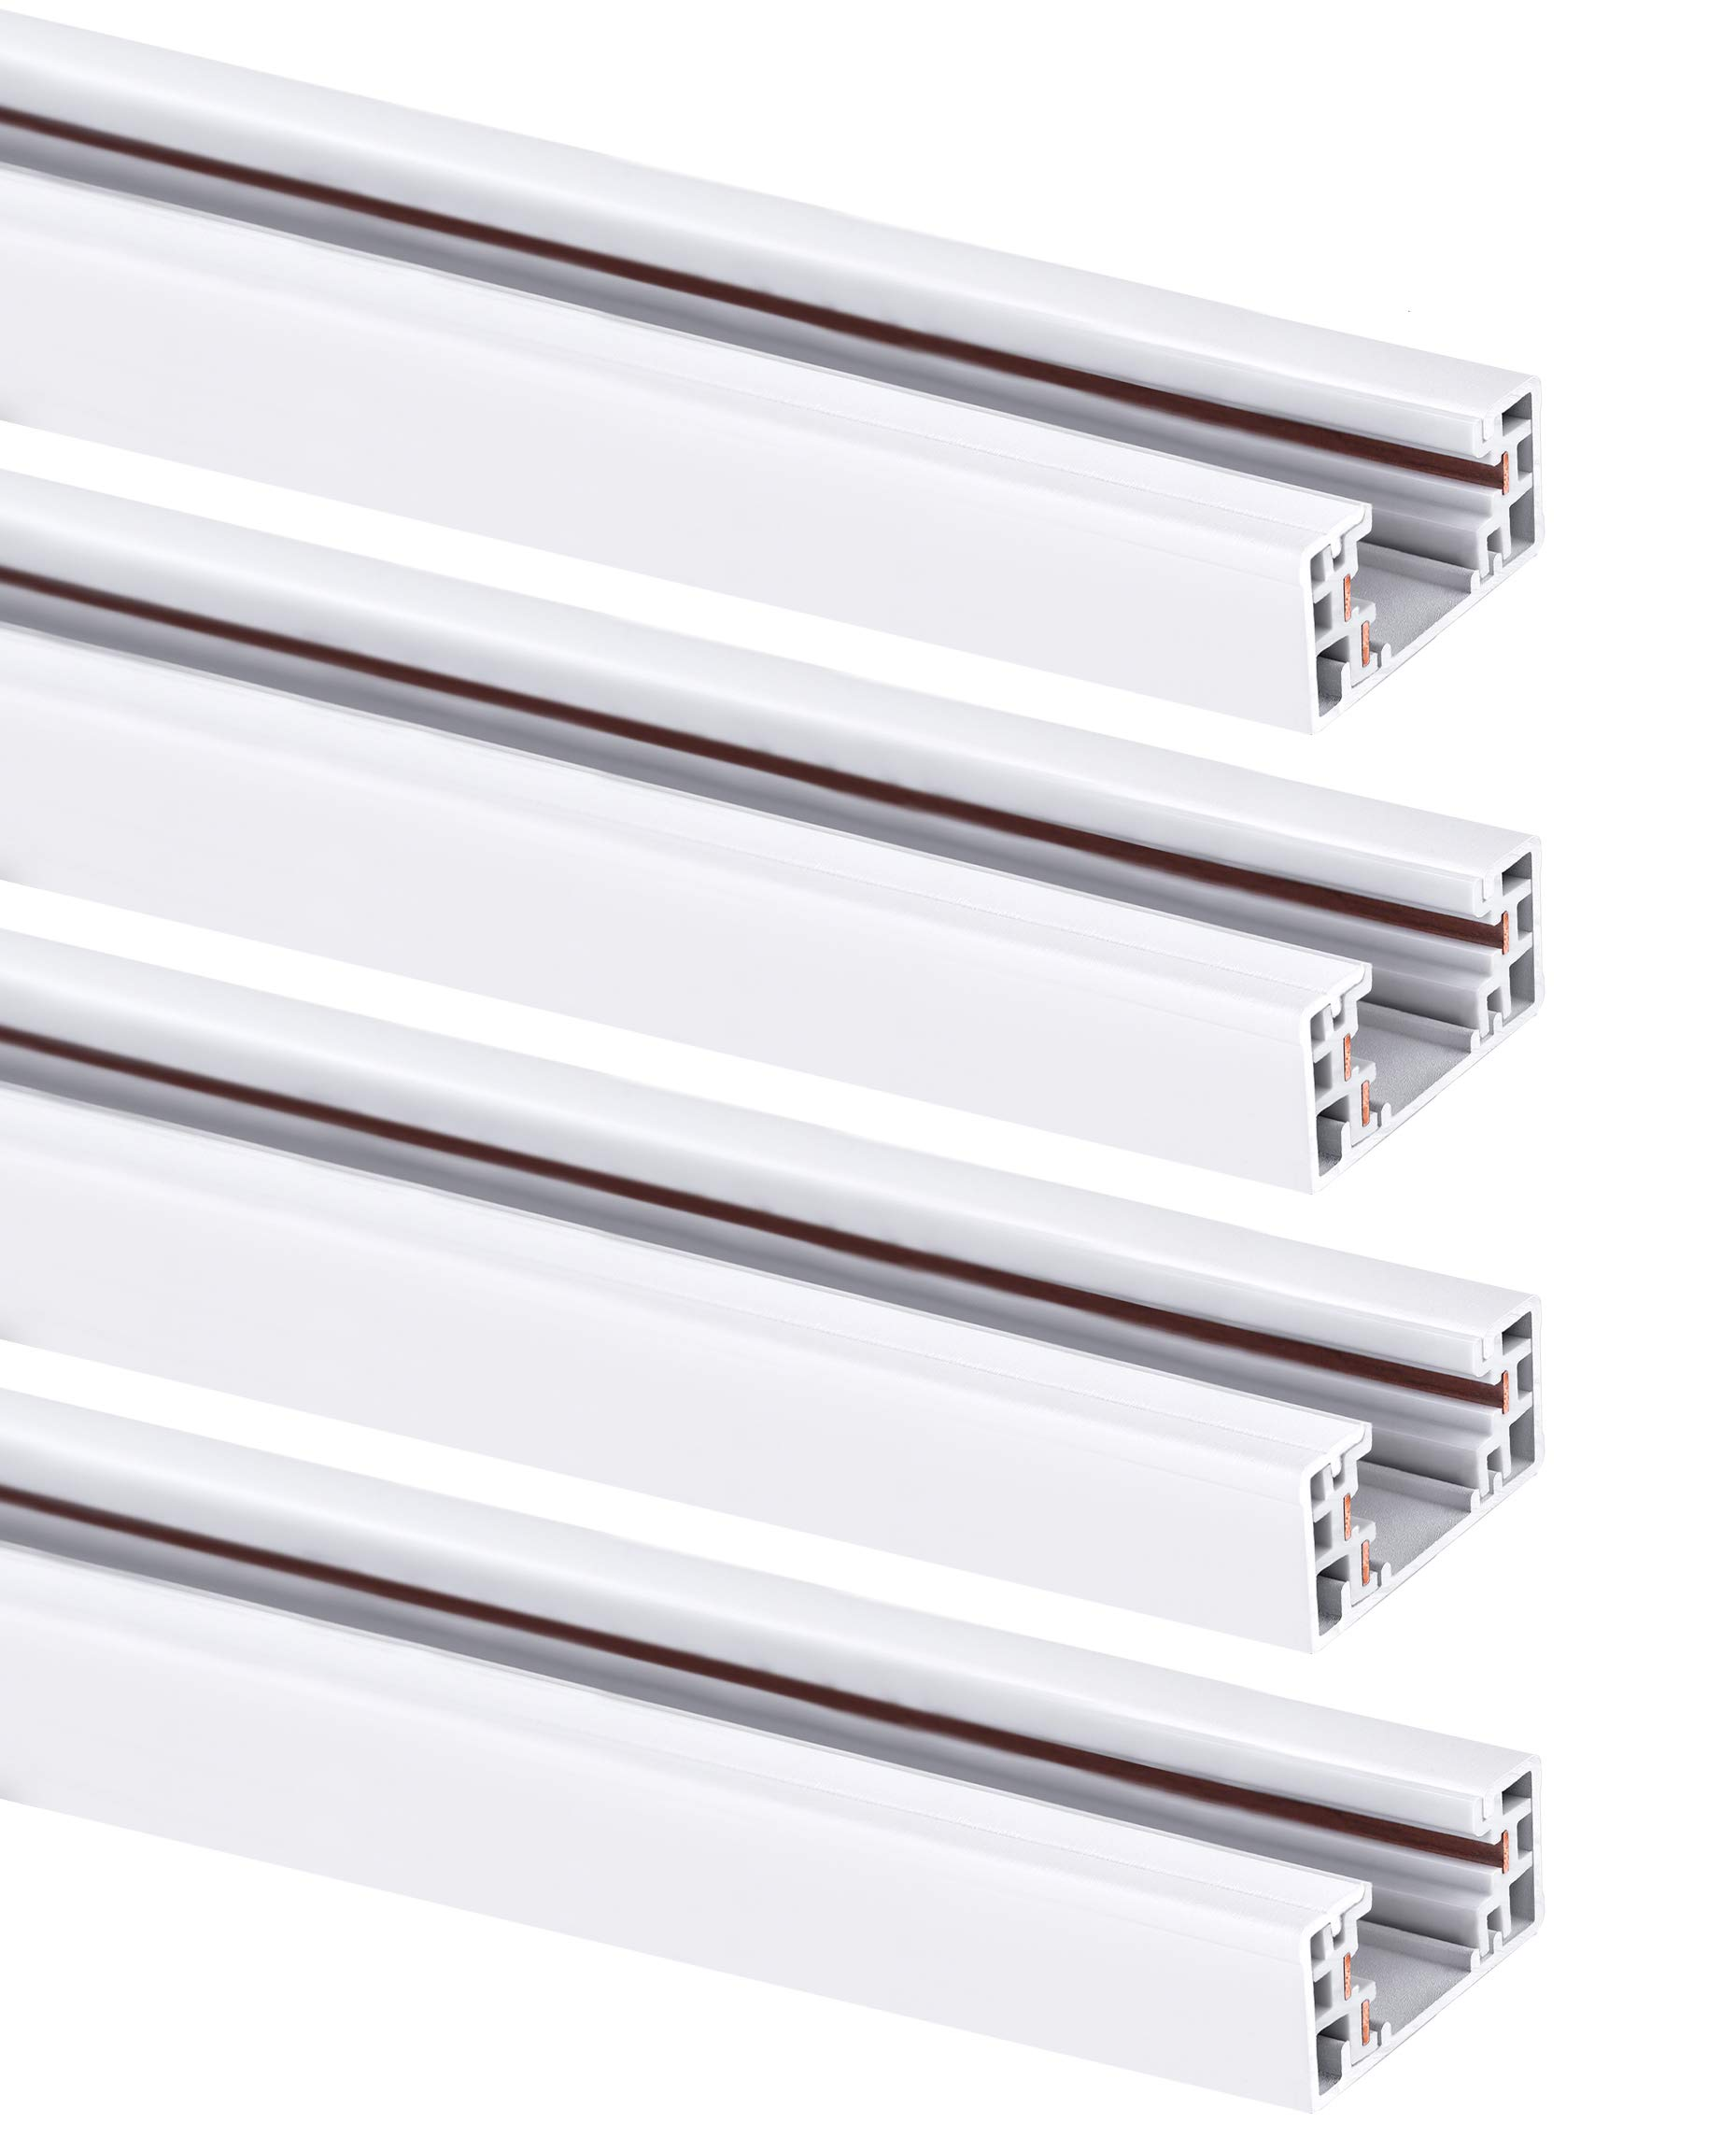 Hyperikon Track Lighting Section, 4ft H Track Rail, White Single Circuit 3-Wire Track Rail (Pack of 4)